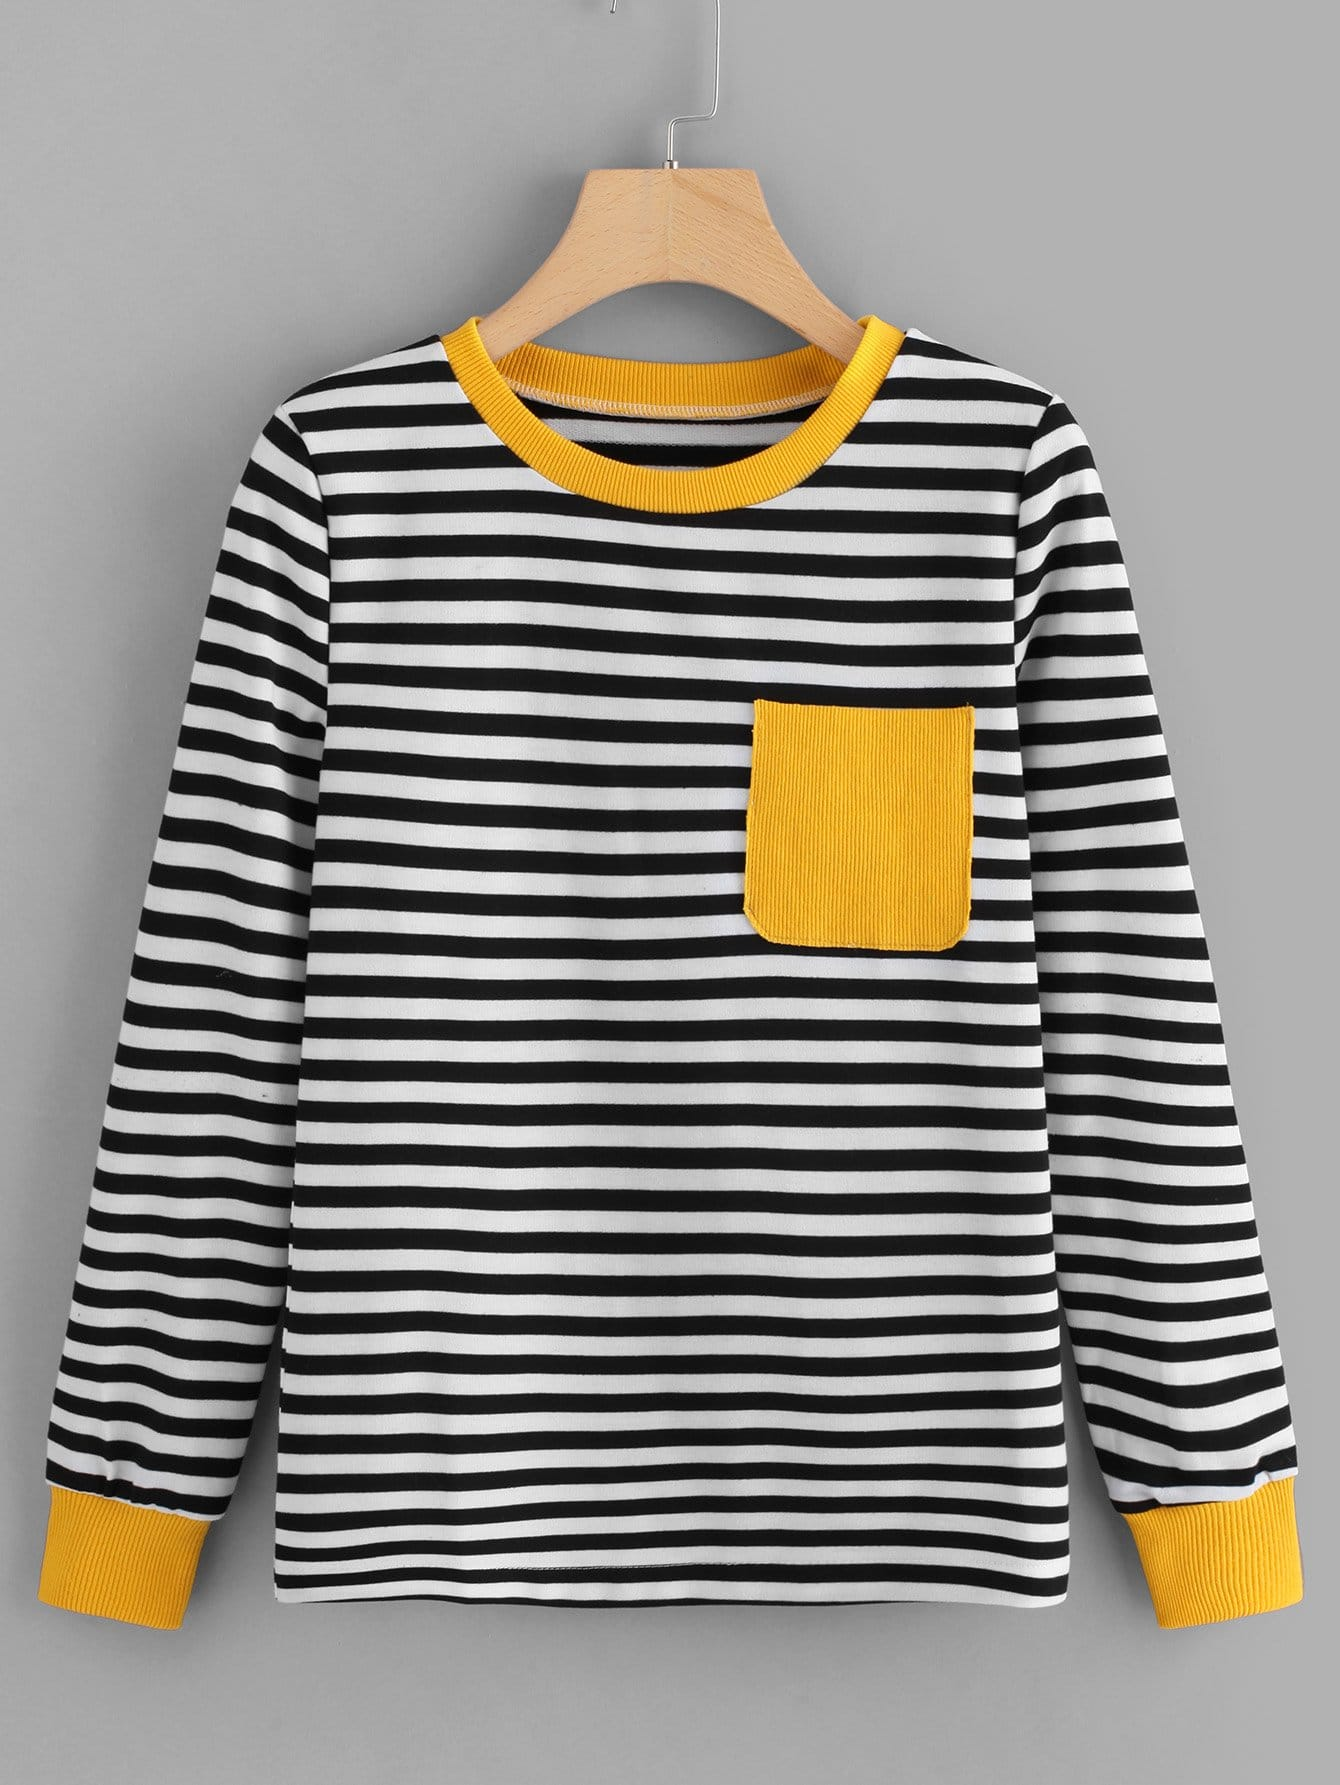 Contrast Pocket Striped Tee fubag force 420 12 24v15 360